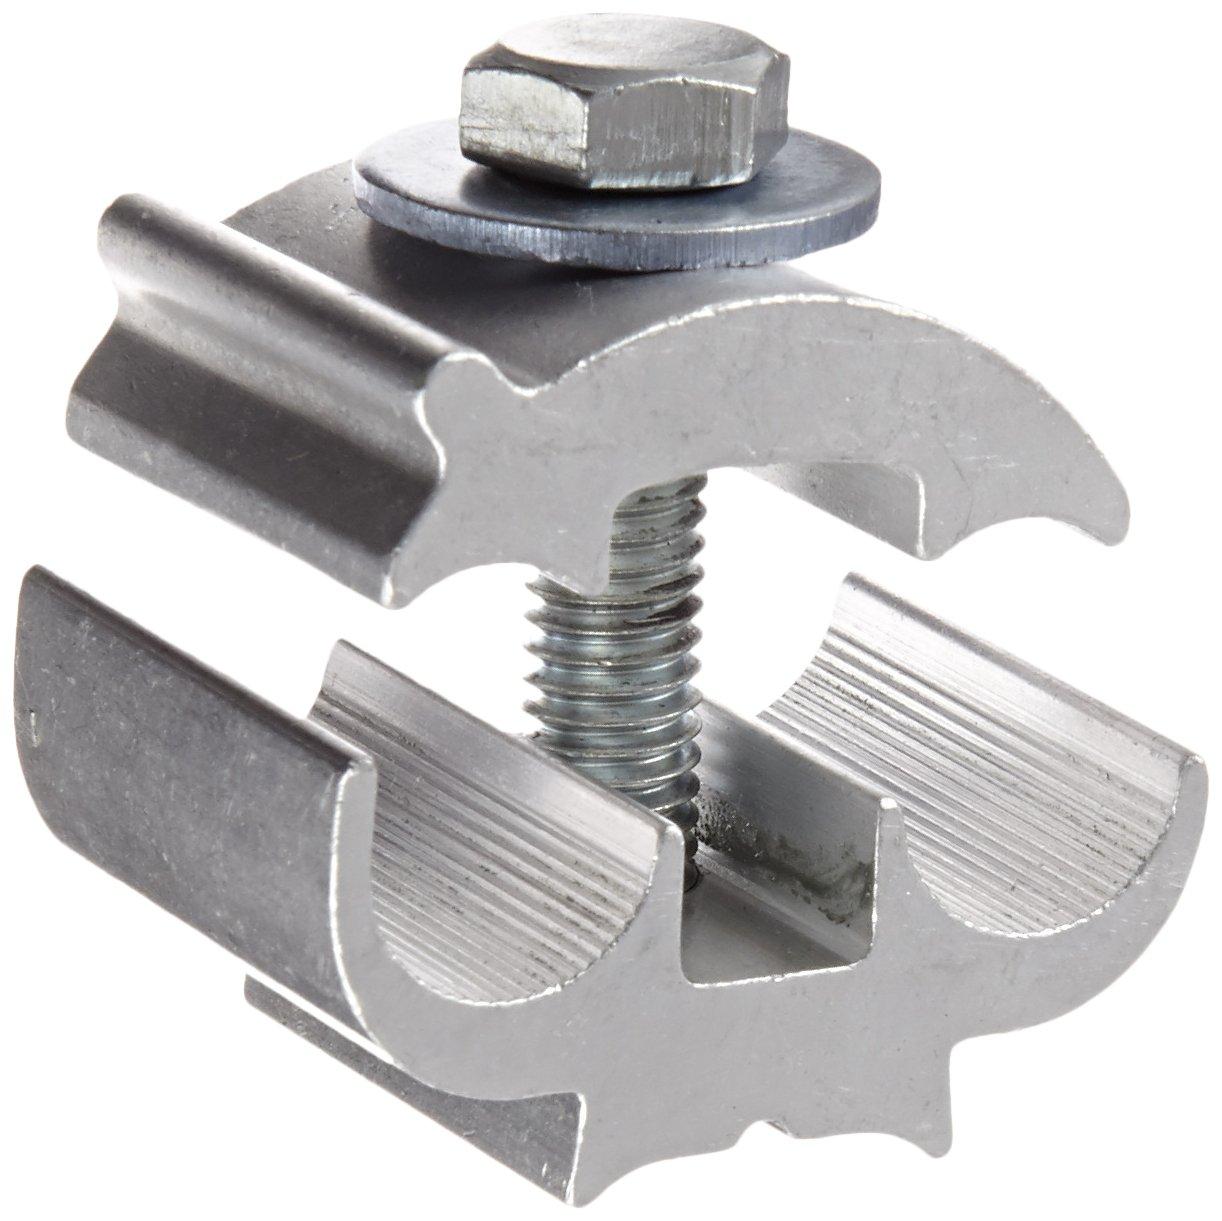 Utility Connector, Extruded Aluminum Parallel Groove Clamps, 2 sol - 4/0 str, 4-4/0 ACSR, 6-4 str AR A Main, 0.250''/0.563'' Wire Diameter Range, 2 sol - 4/0 str, 4-4/0 ACSR, 6-4 str AR B Tap, 0.250''/0.563'' Bolt Range, 3/8'' Size, 1-5/16'' Width, 1-1/2'' Lengt by NSI